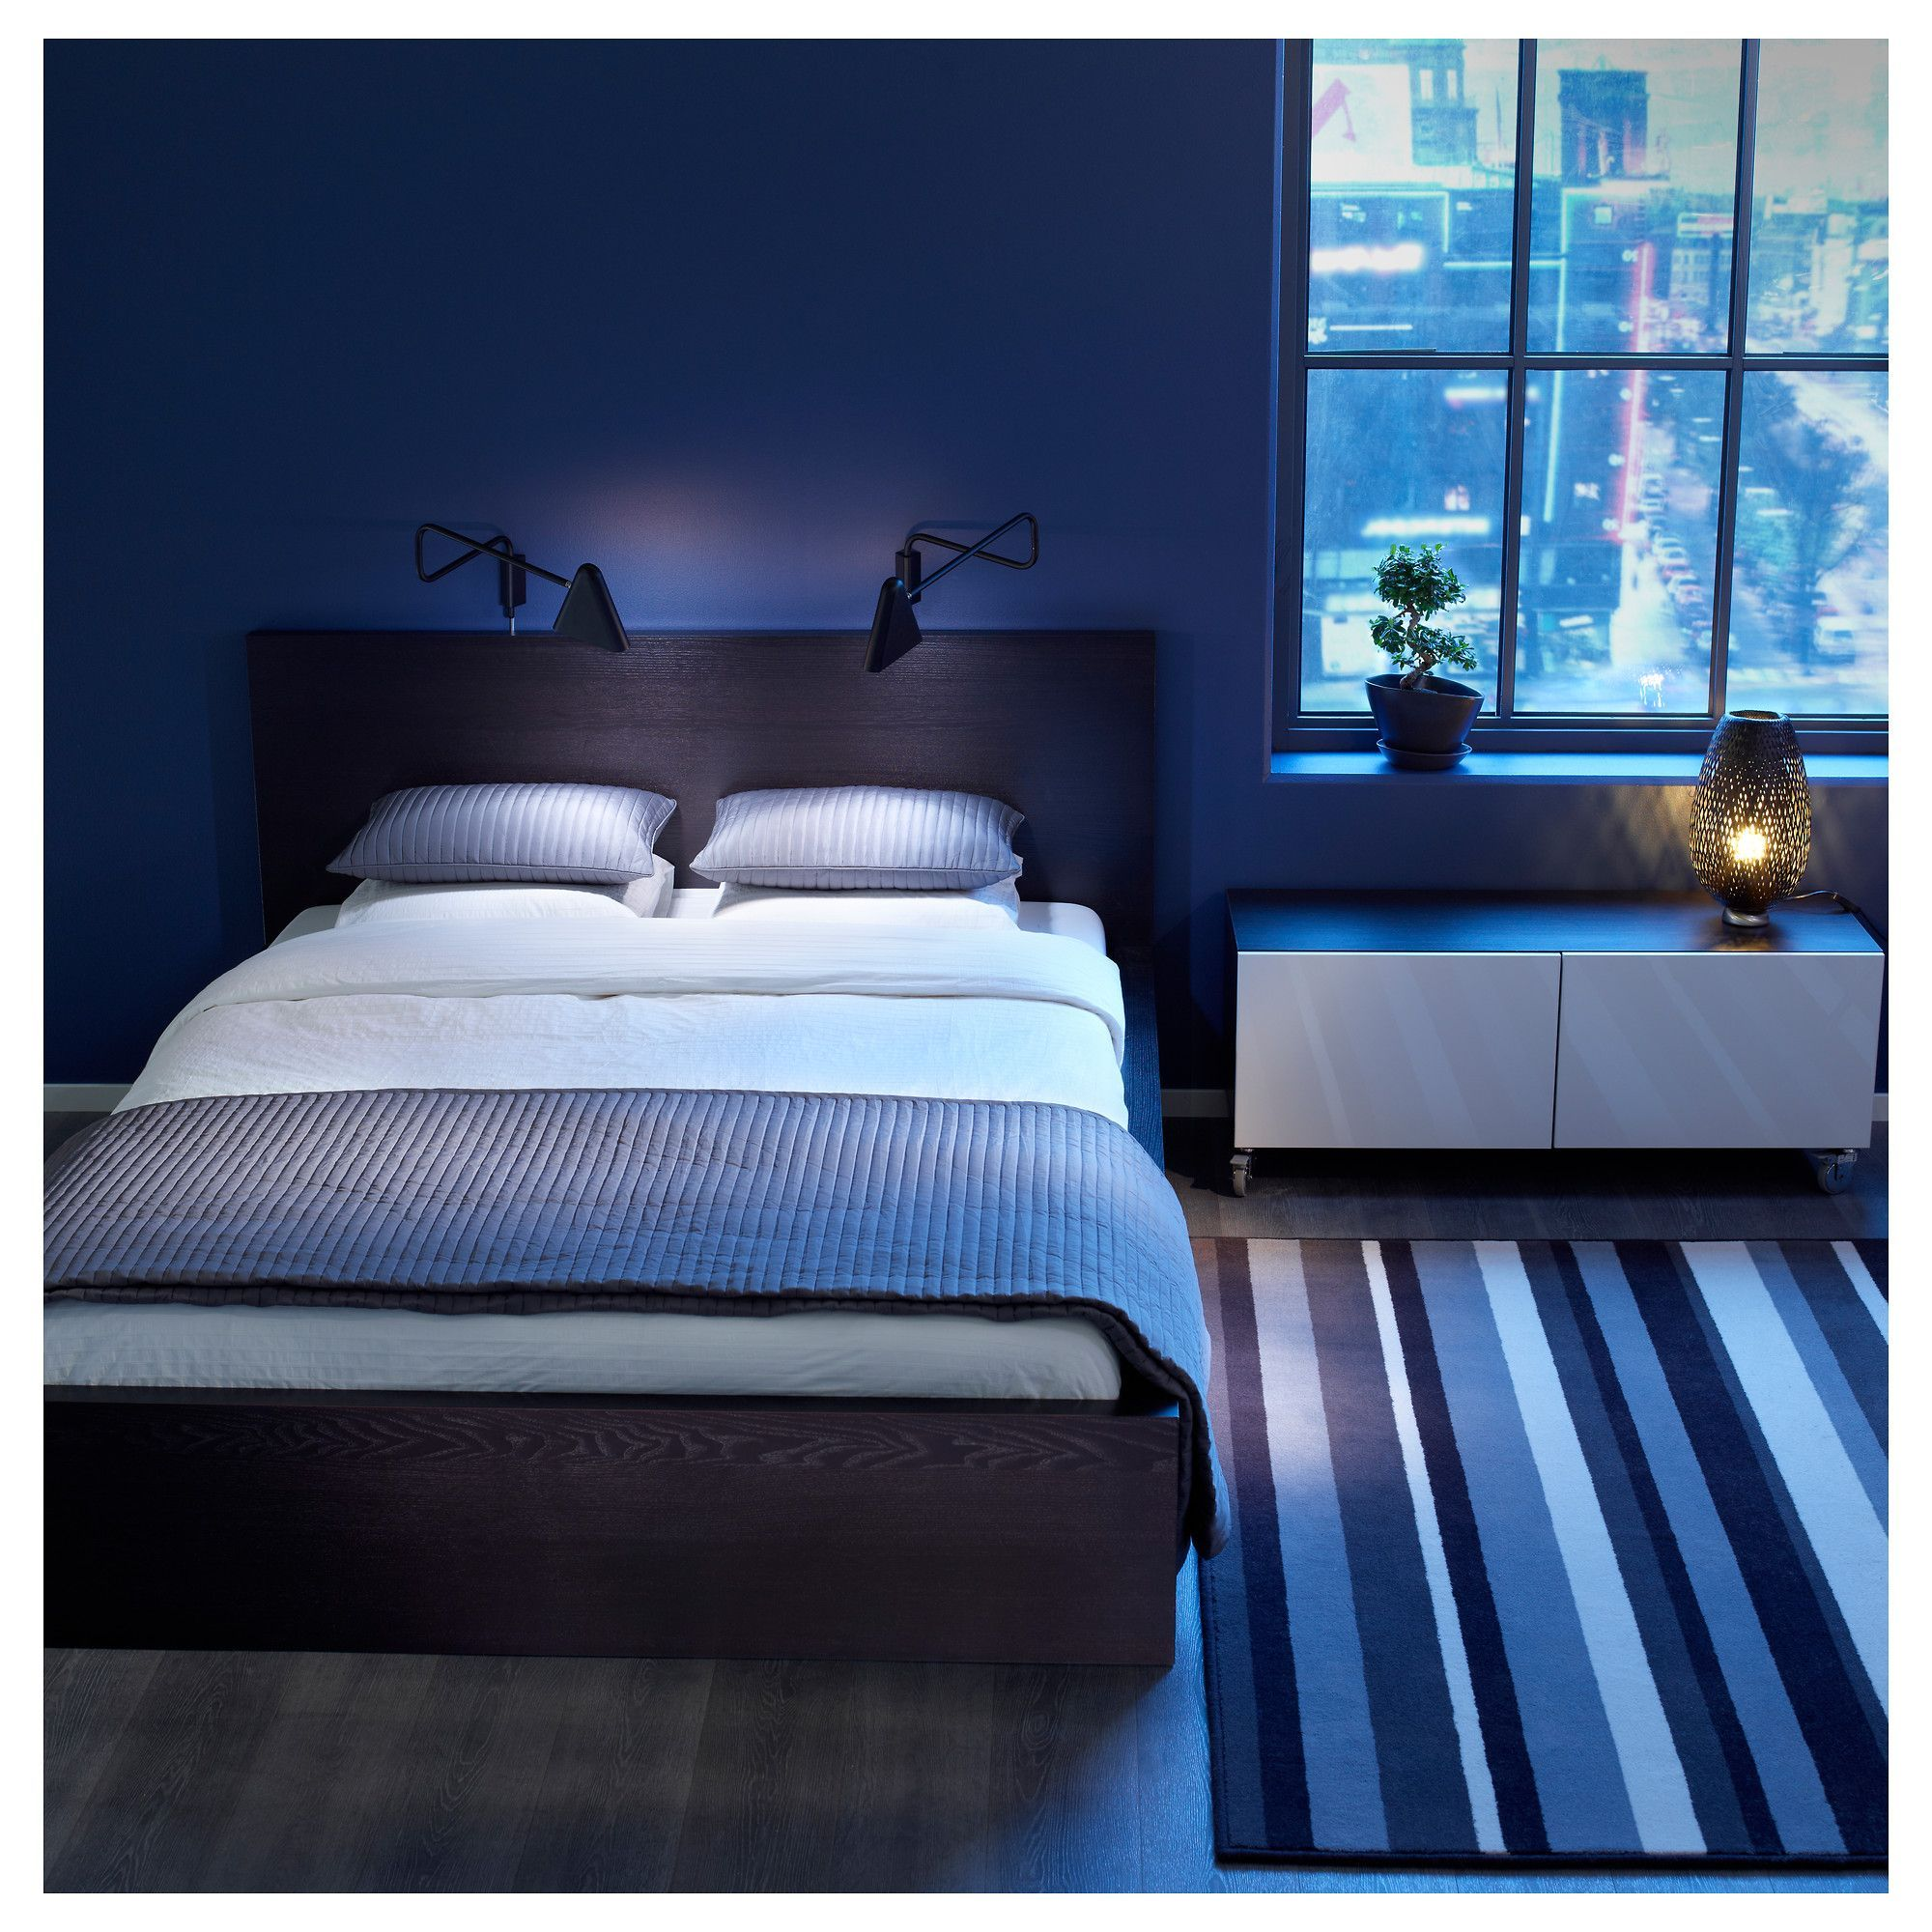 Bedroom design ideas for women blue - Best Blue Themed Bedroom Decorations With Dark Wooden Platform Bed Plus White Bedding Plus Brown Wooden Headbaord Plus White Cushions And Striped Carpet